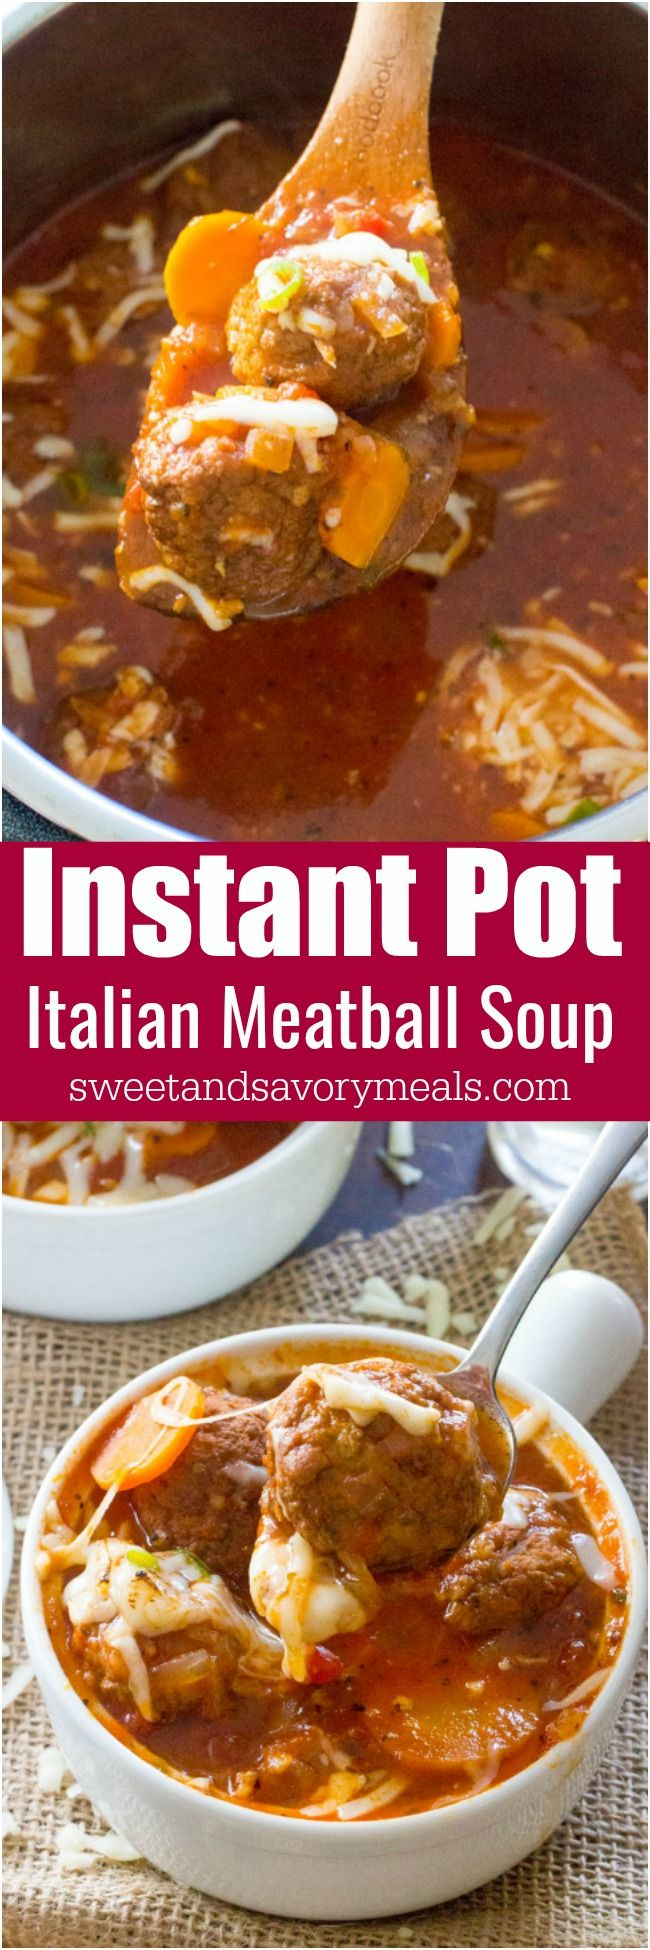 Instant Pot Italian Meatball Soup is easily made in one pot in your Instant Pot, with accessible ingredients and in just 30 minutes. Juicy meatballs cooked in a rich tomato broth. #instantpot #soup